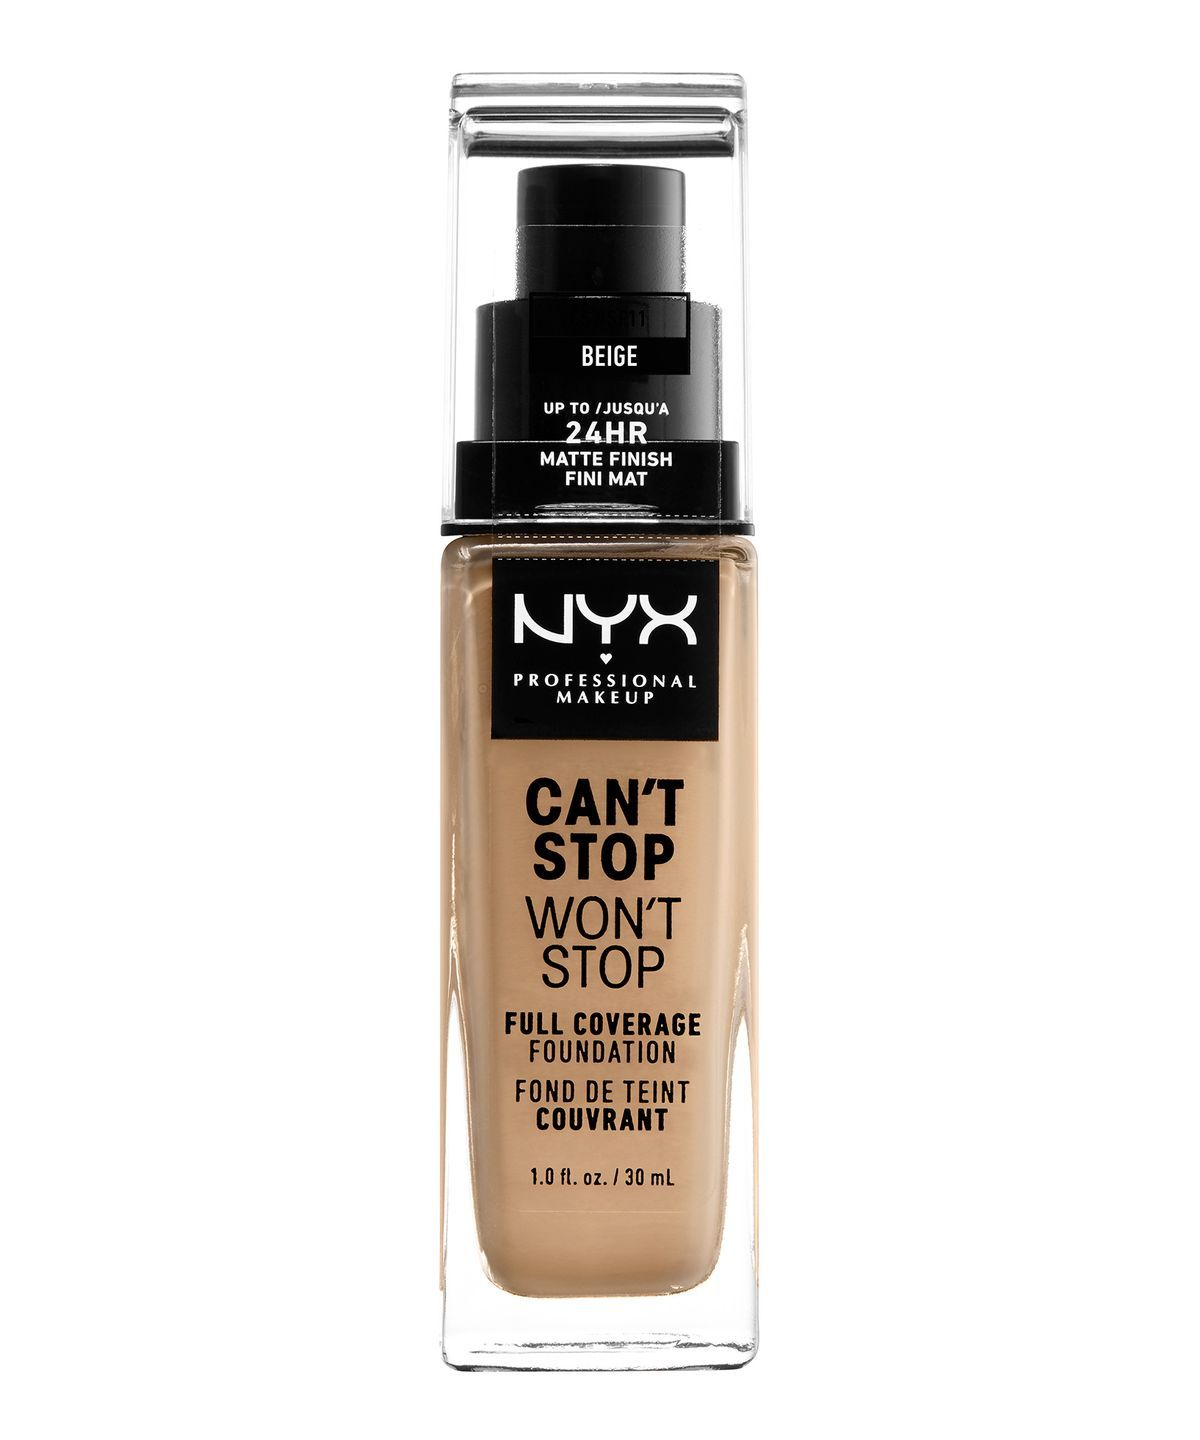 CANT STOP WONT STOP 24HR FOUNDATION BEIGE - NYX PROFESSIONAL MAKEUP